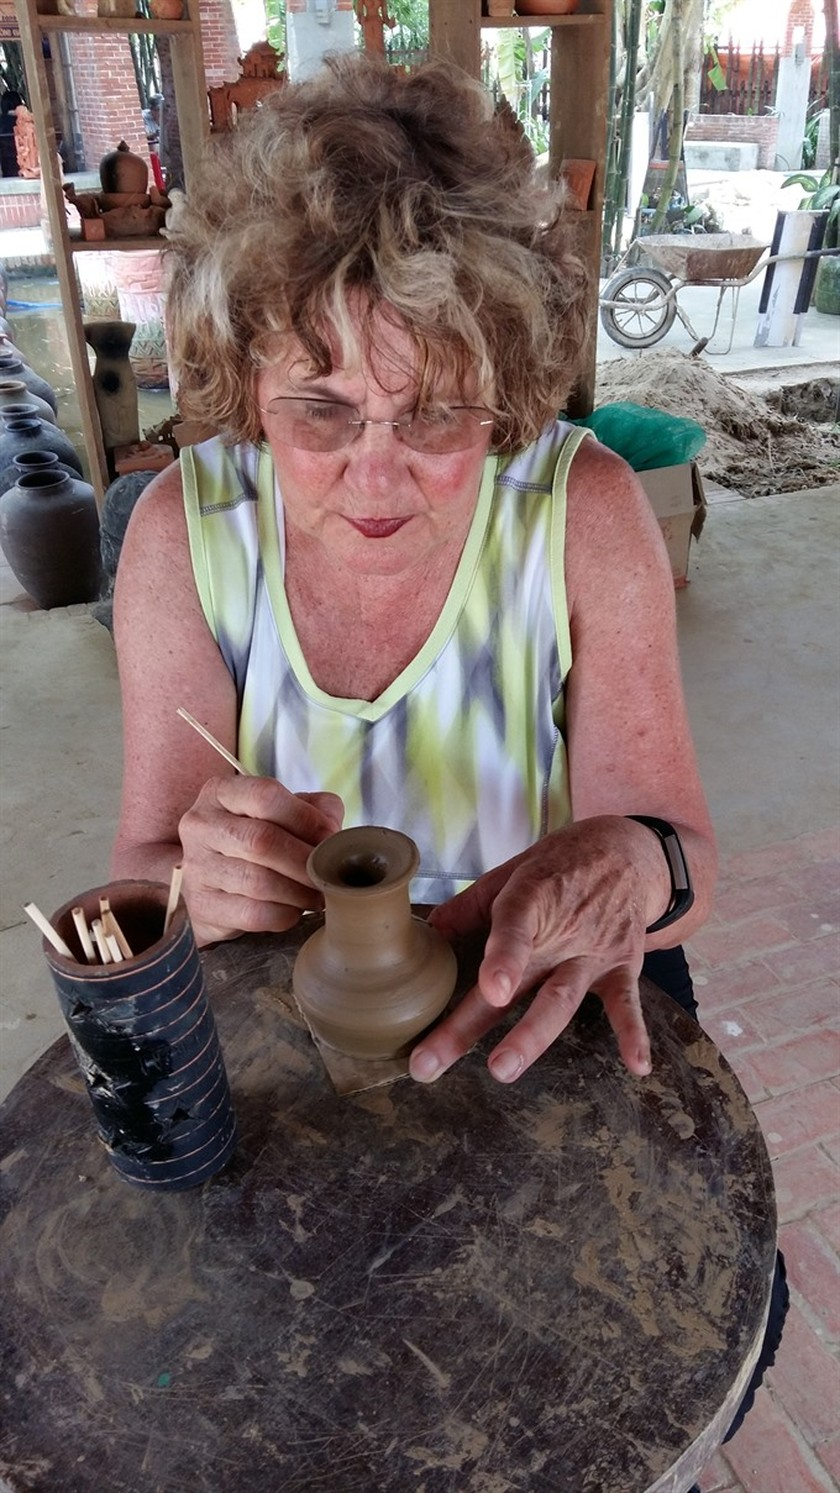 Park preserves pottery trade in Hoi An ảnh 4